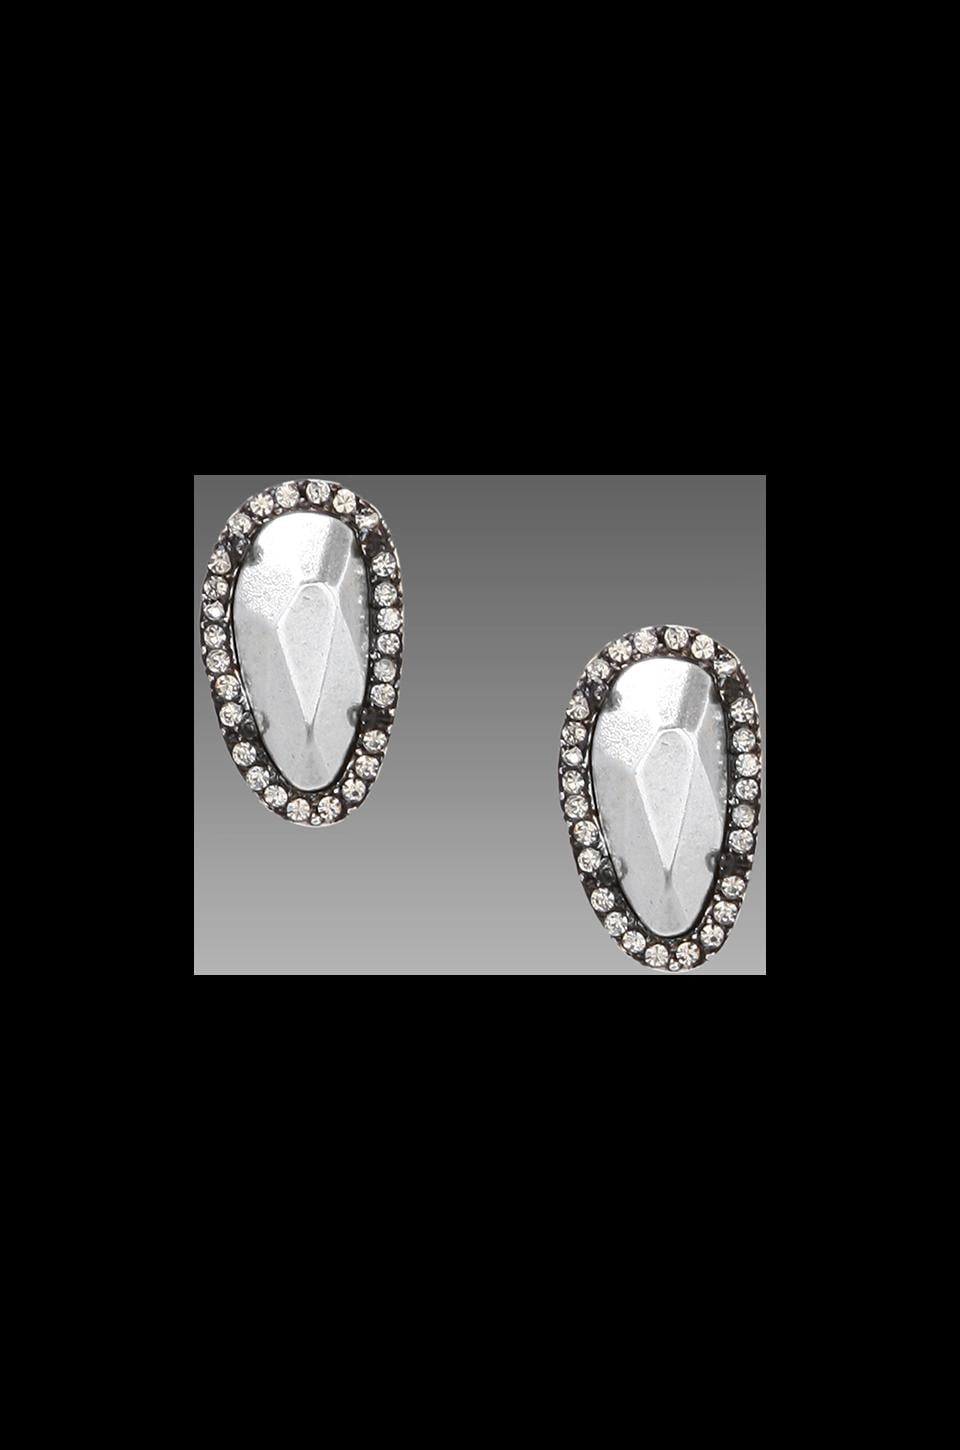 House of Harlow Rif Pebble Stud Earrings in Silver